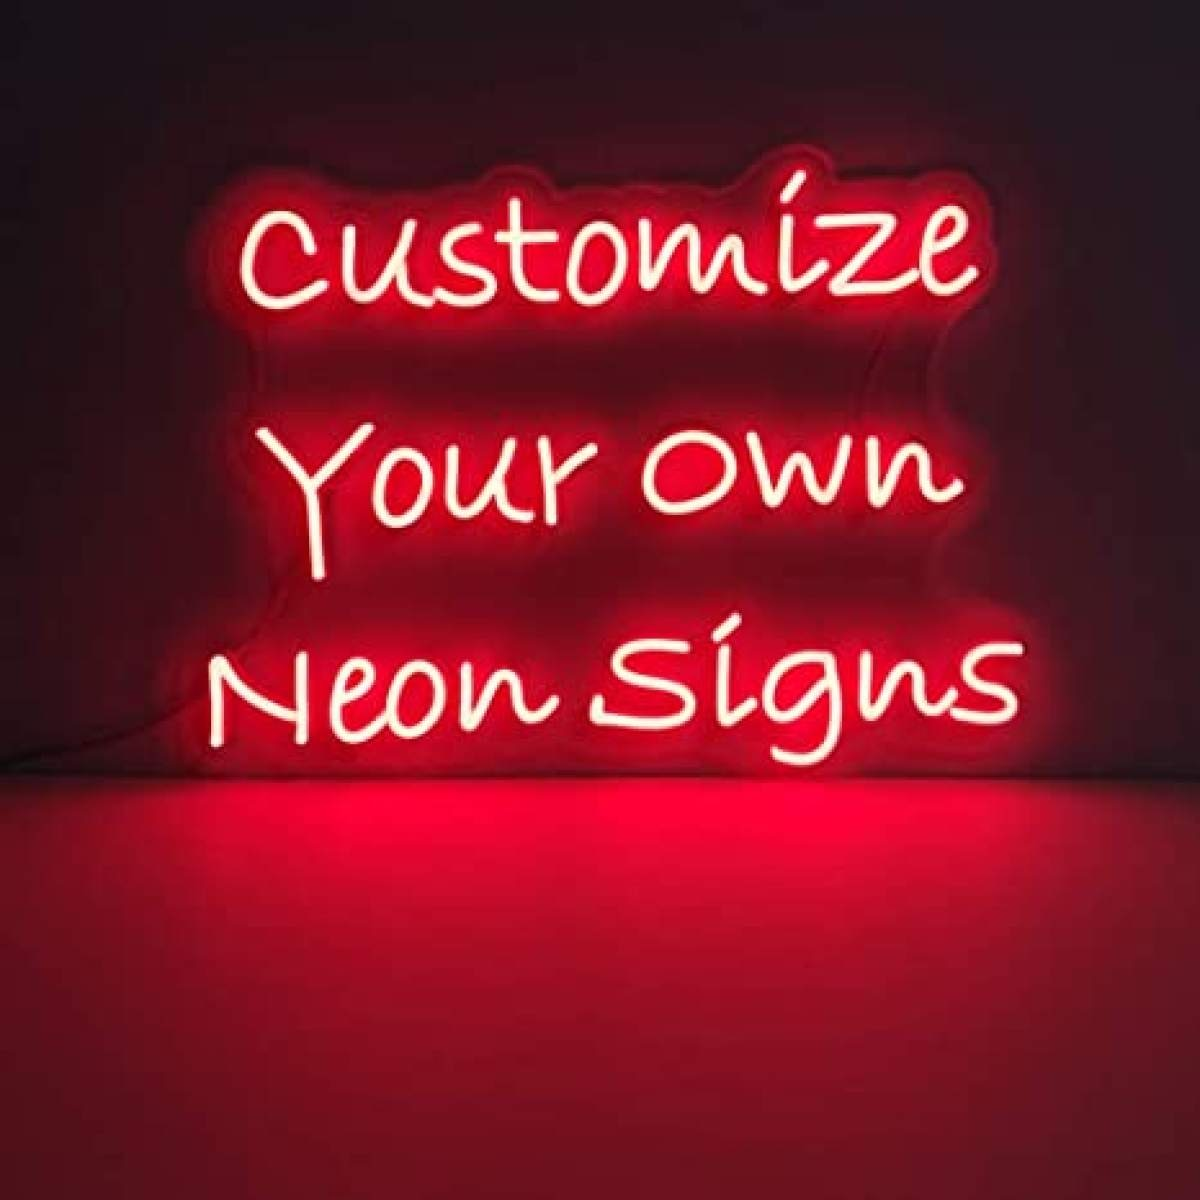 Women Neon Sign Custom logo Led Neon Sign Wedding Party Birthday Name Personalized Led Sign For Room Wall Bedroom Lights Party enlarge